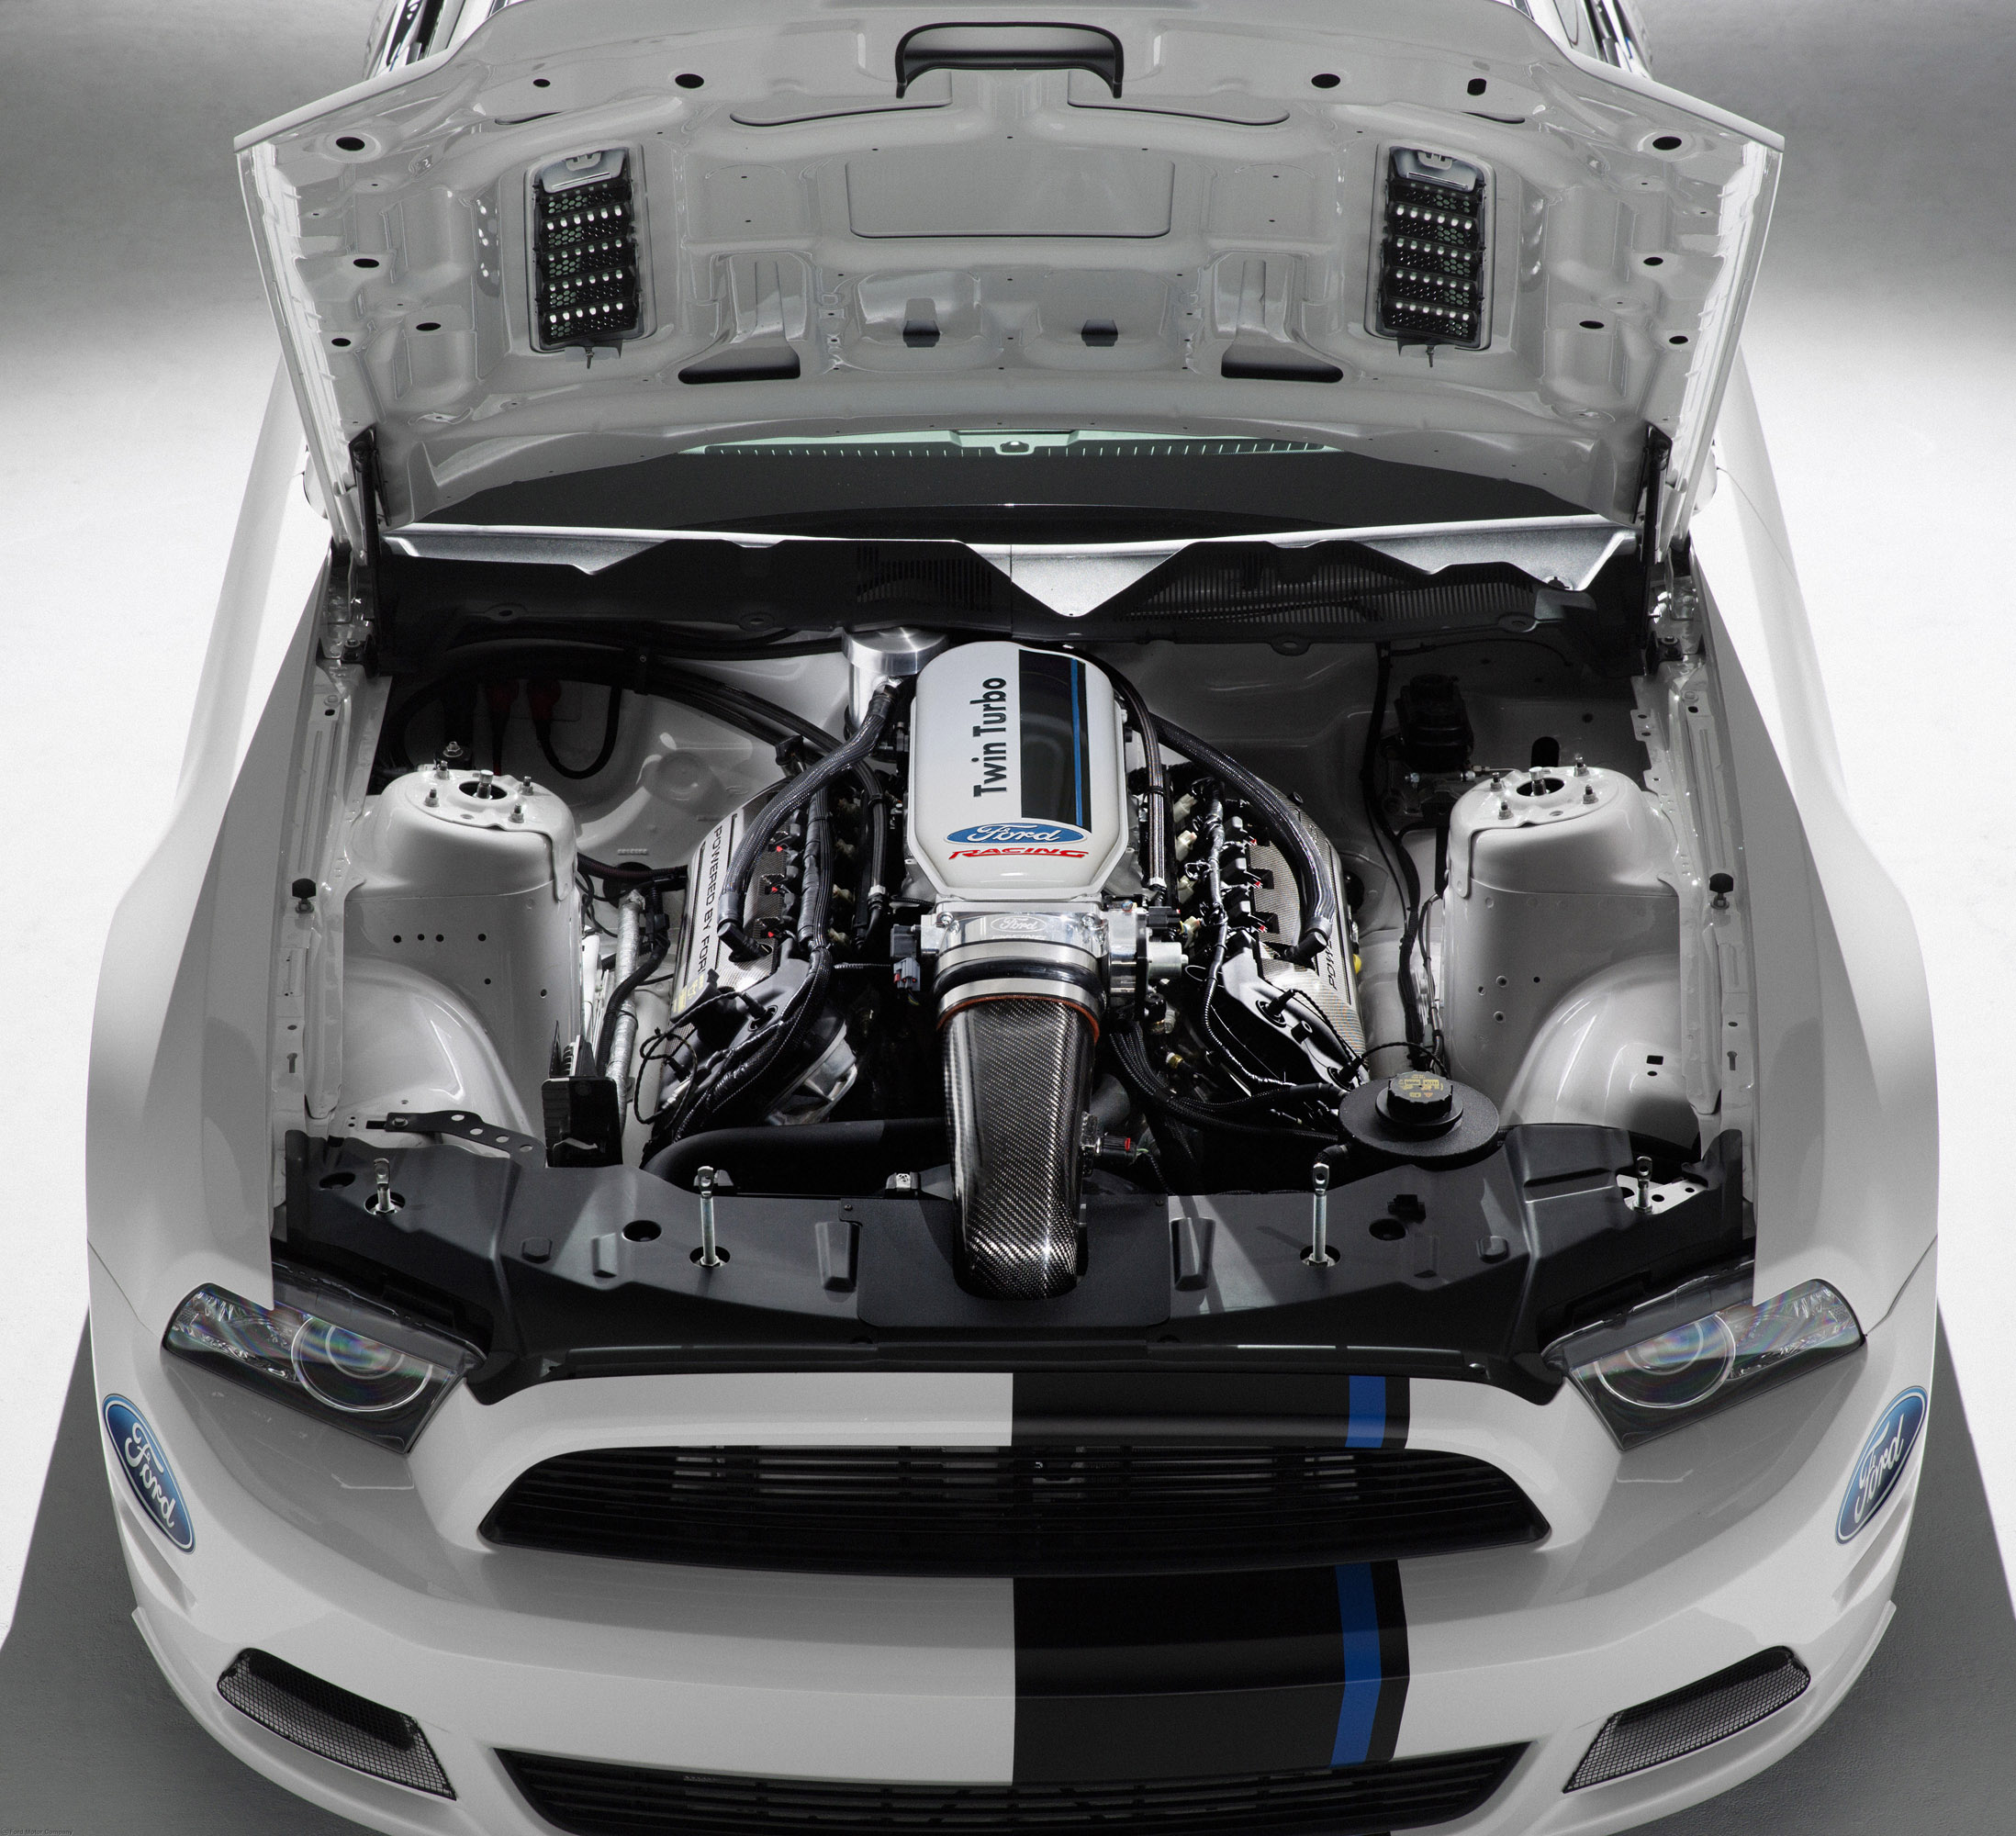 Ford Mustang Cobra Jet TwinTurbo Concept  Picture 76083